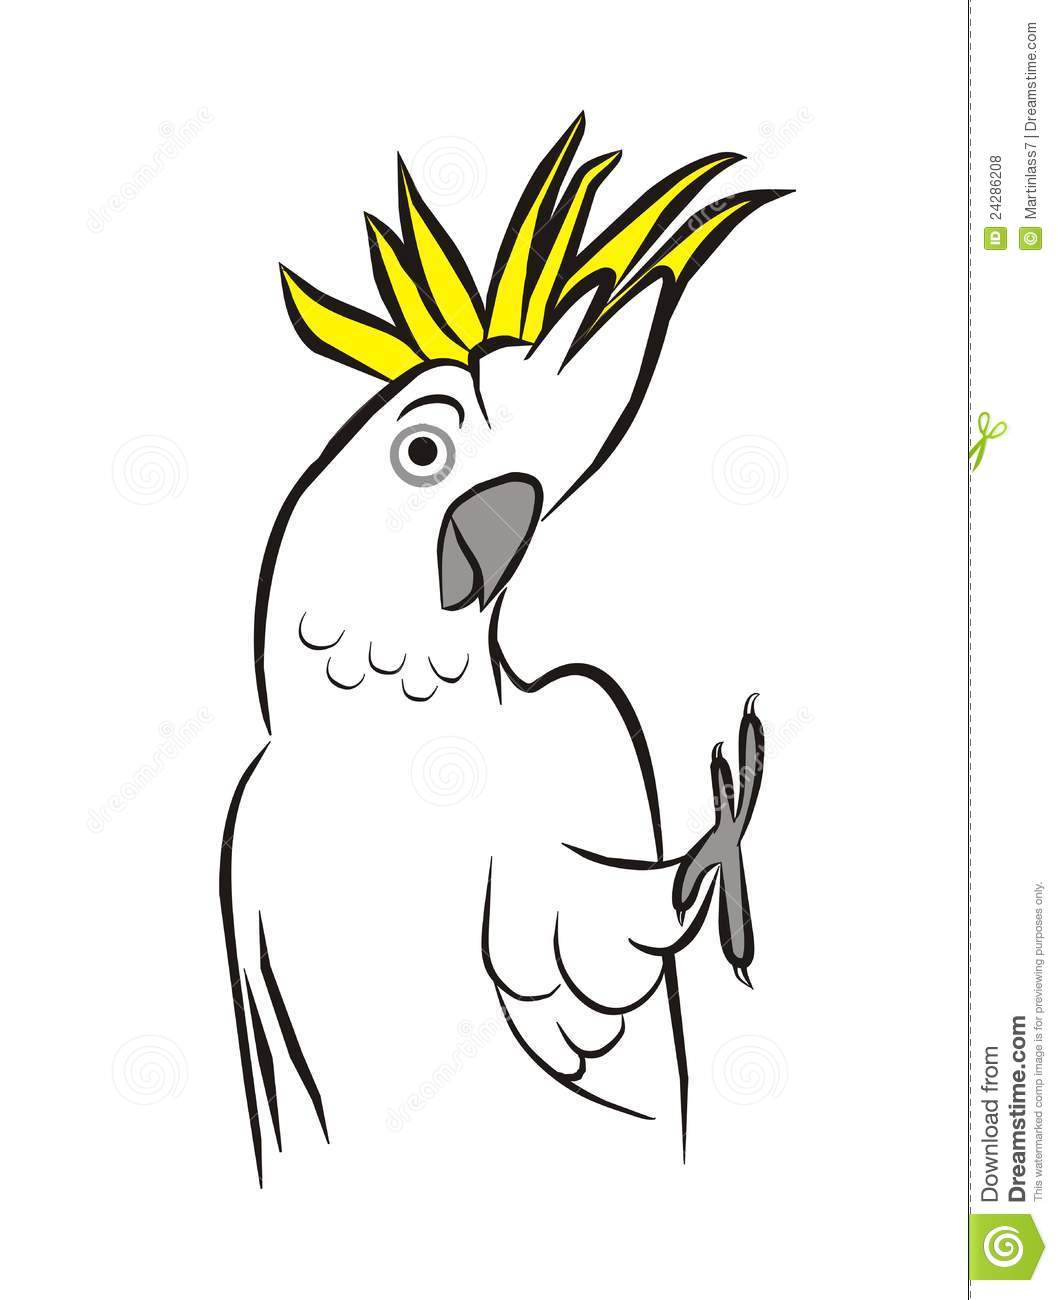 Cockatoo clipart Crested clipart Sulphur clipart crested